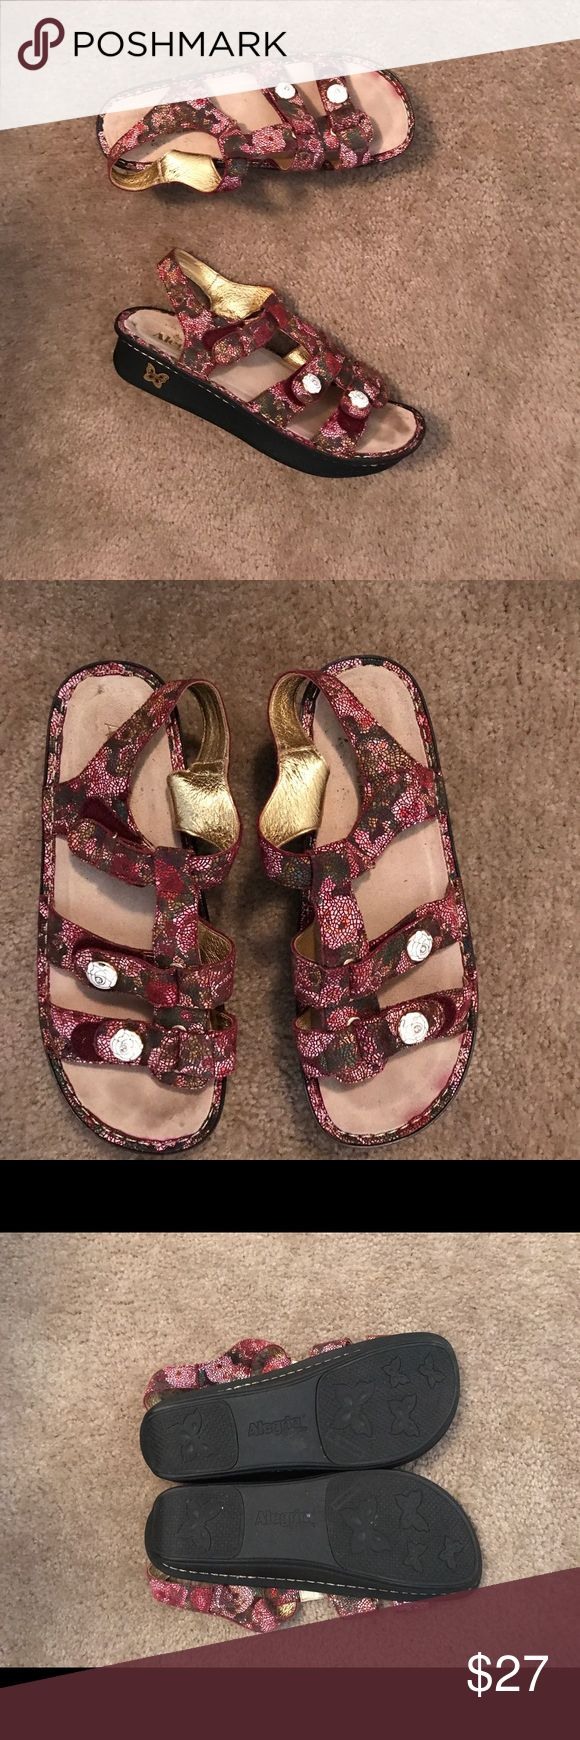 Alegria by PG Lite sandals shoes size 42 / 12 So pretty! Women's Alegria sandals size 42 (12 US). In good condition with minor scuffing. Alegria Shoes Sandals